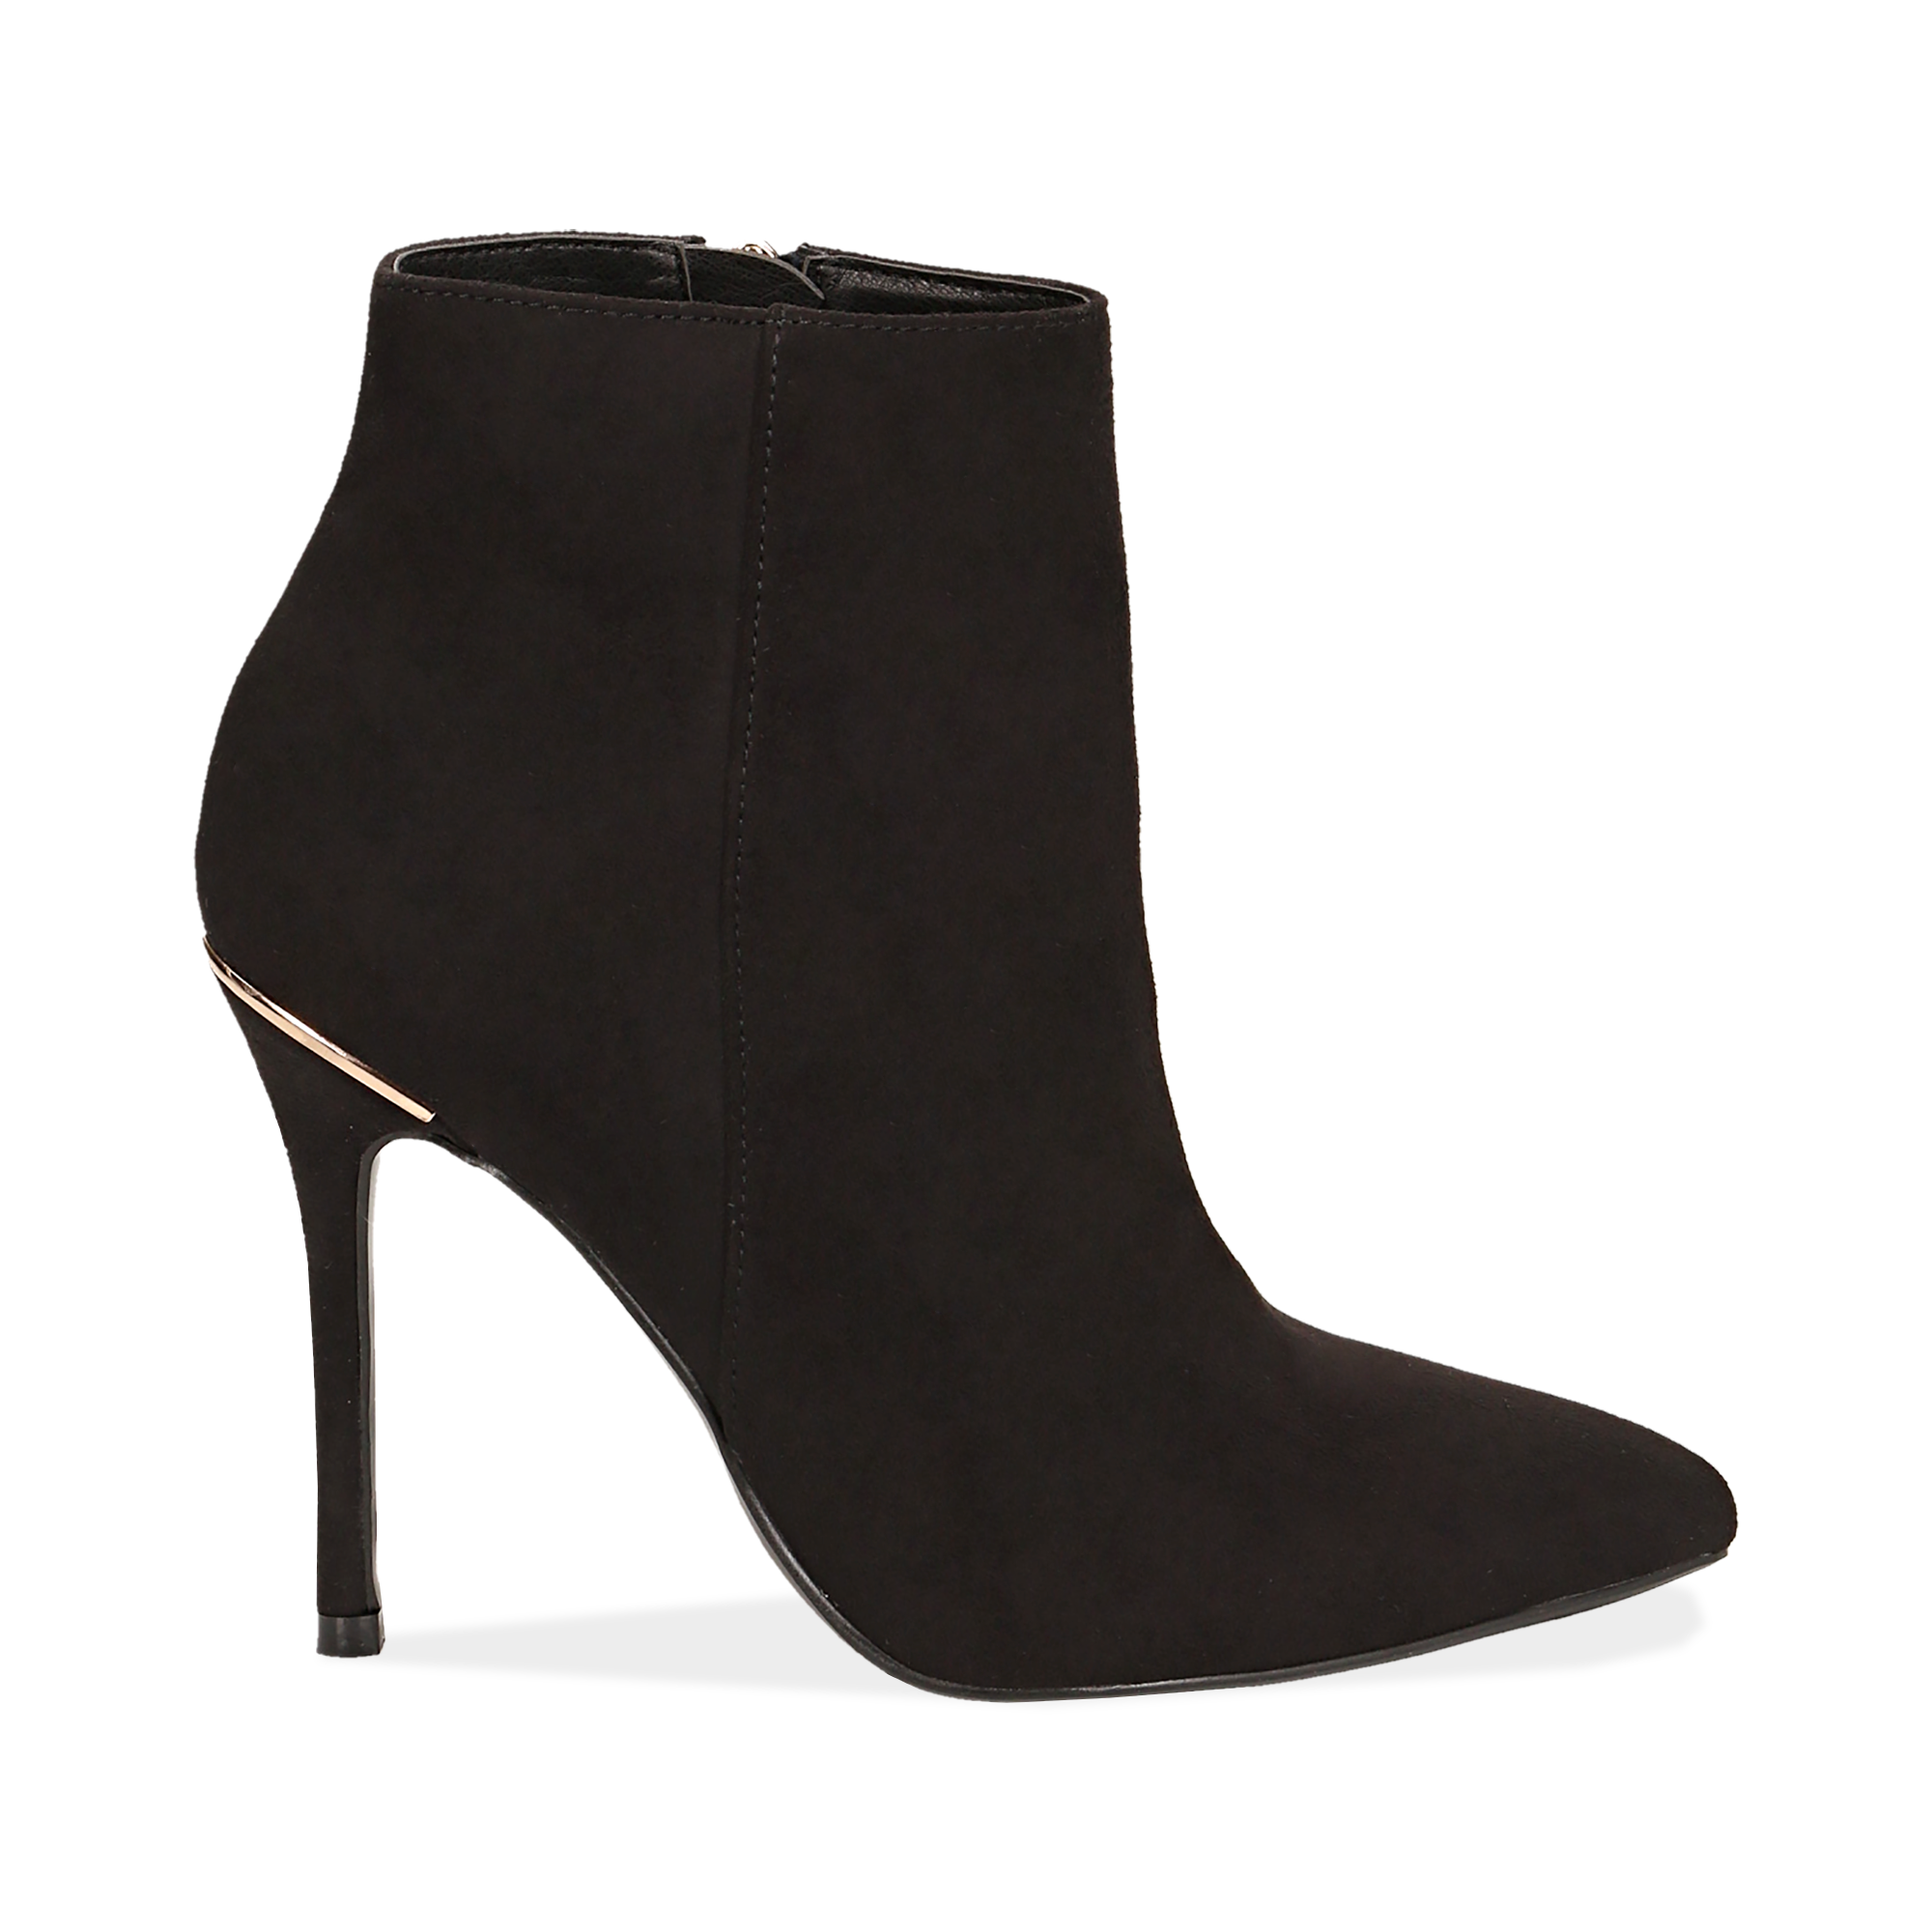 Ankle boots neri in microfibra, tacco 11 cm